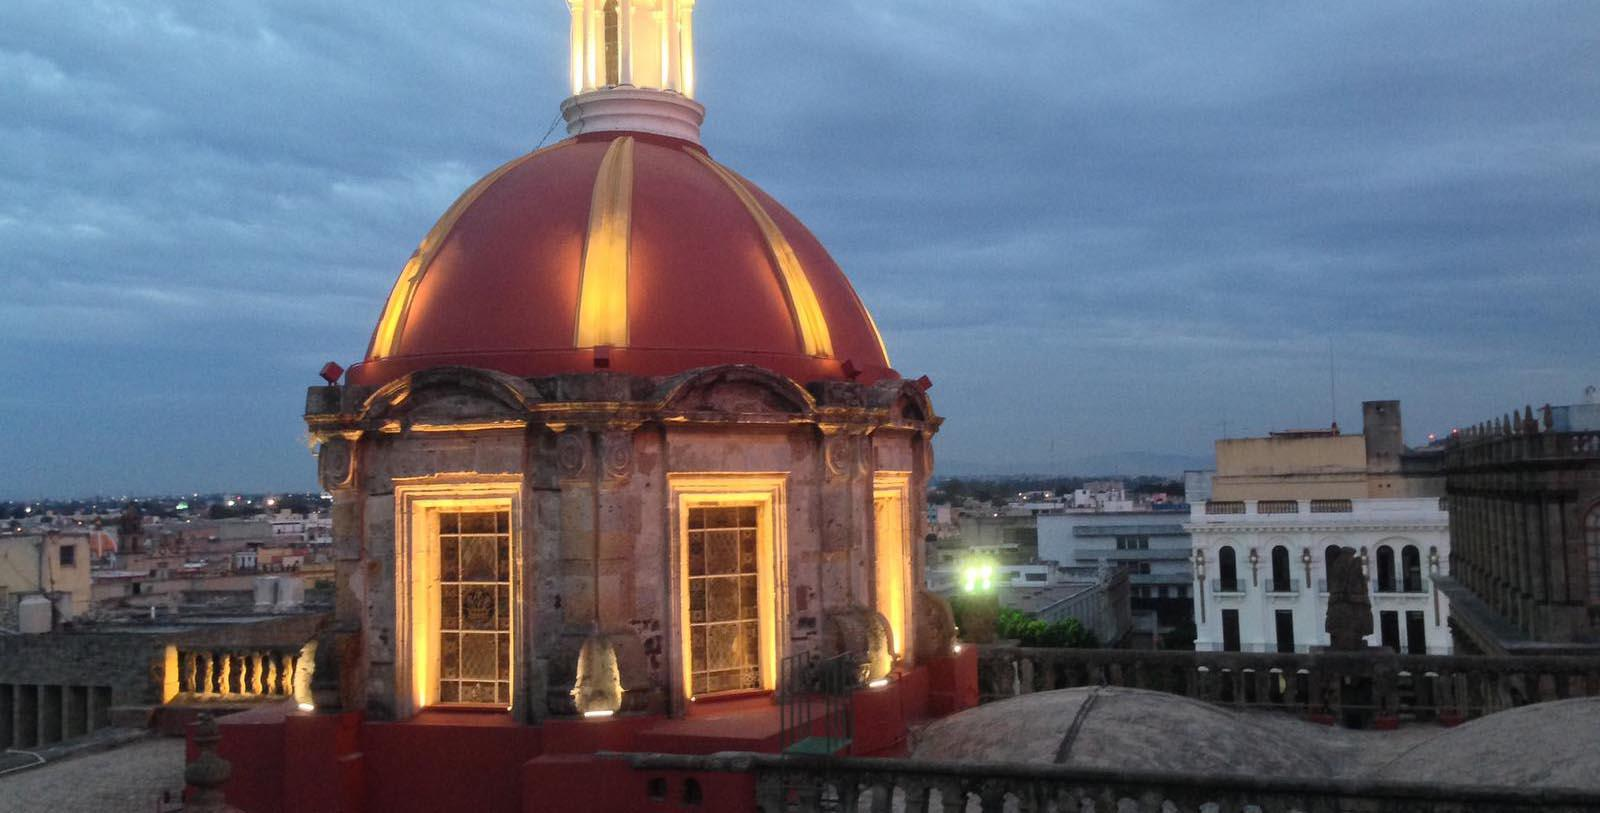 Image of Rooftop on Hotel de Mendoza, 1968, Member of Historic Hotels Worldwide, in Guadalajara, Mexico, Overview